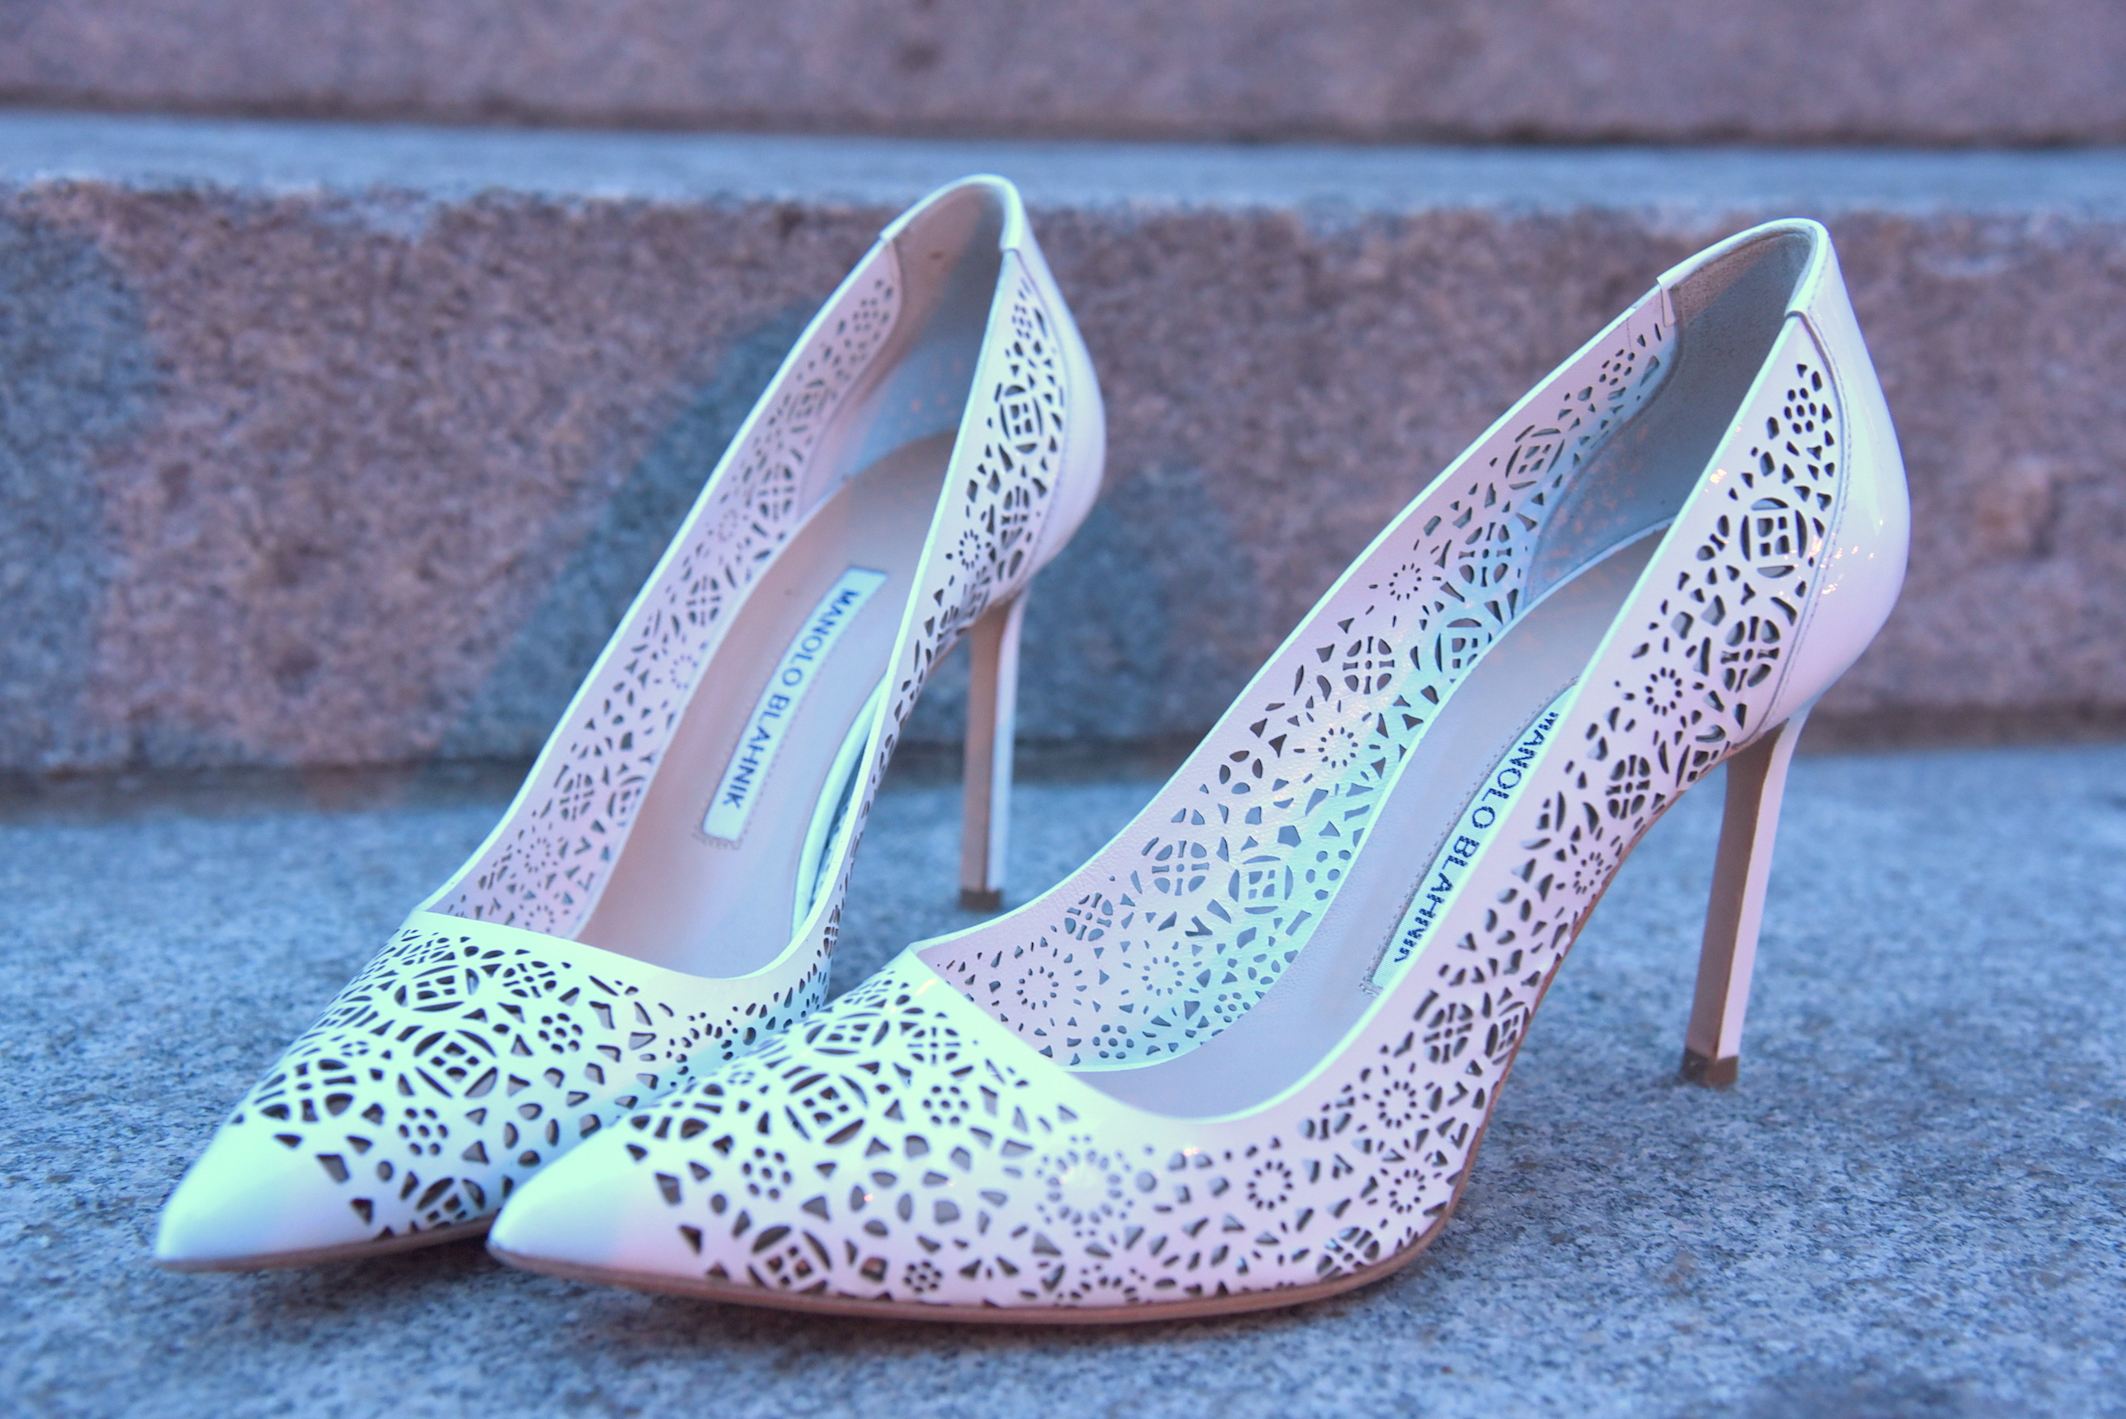 manolo-blahnik-shoes-laser-cut-fashion-blogger-nyc-mybigapplecity